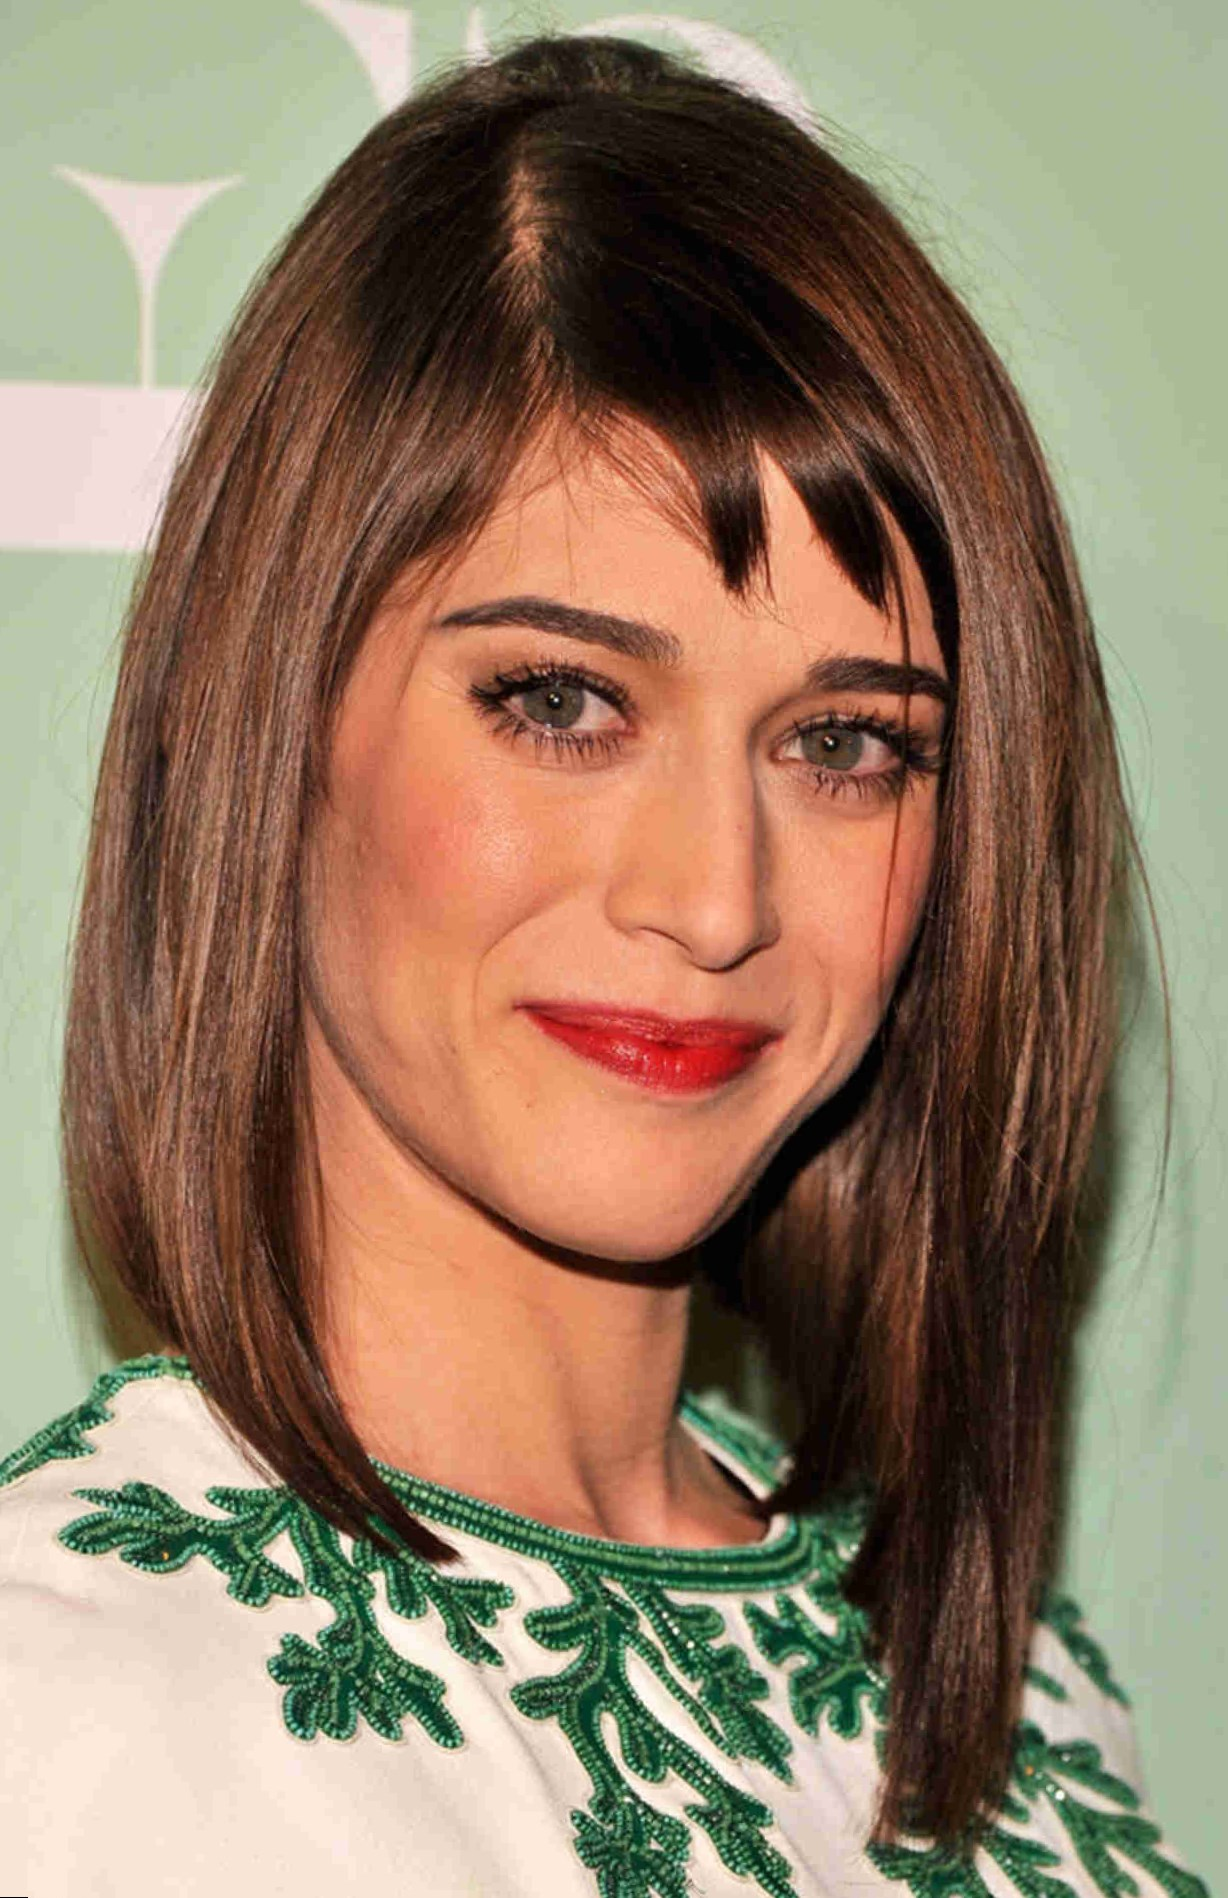 Lizzy Caplan Nude Photos 100